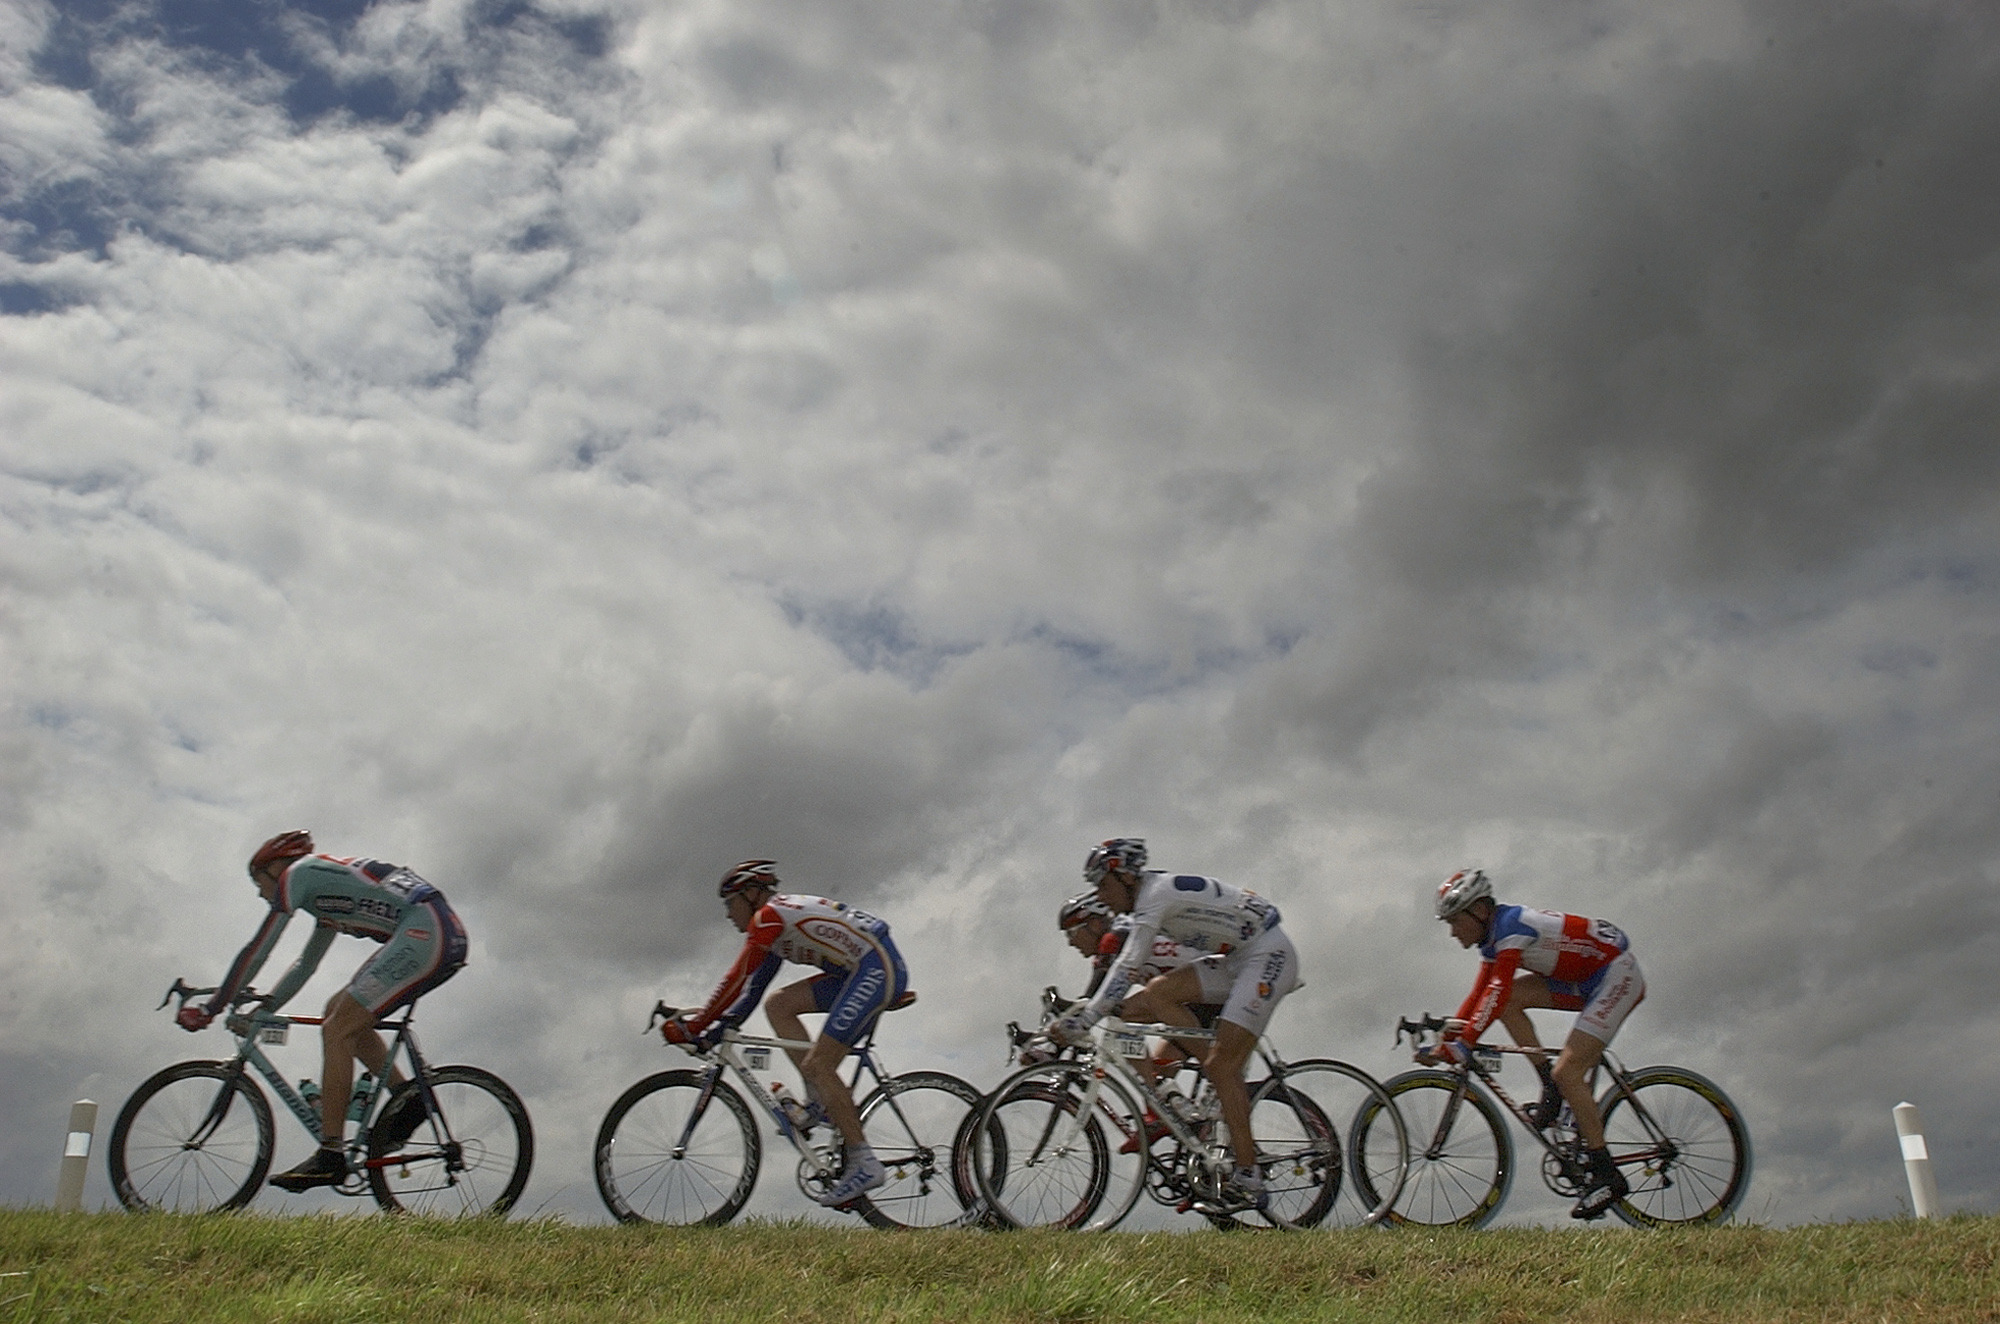 The breakaway group with cyclists Magnus Backstedt of Sweden, left, Stuart O'Grady of Australia, second left, Sandy Casar of France, third from left front, Jakob Piil of Denmark, third from left rear, and Thomas Voeckler of France, pedal during the 5th stage of the Tour de France cycling race between Amiens, northern France, and Chartres, west of Paris, Thursday, July 8, 2004. O'Grady won the stage, Voeckler takes over the overall leader's yellow jersey. (AP Photo/Peter Dejong)